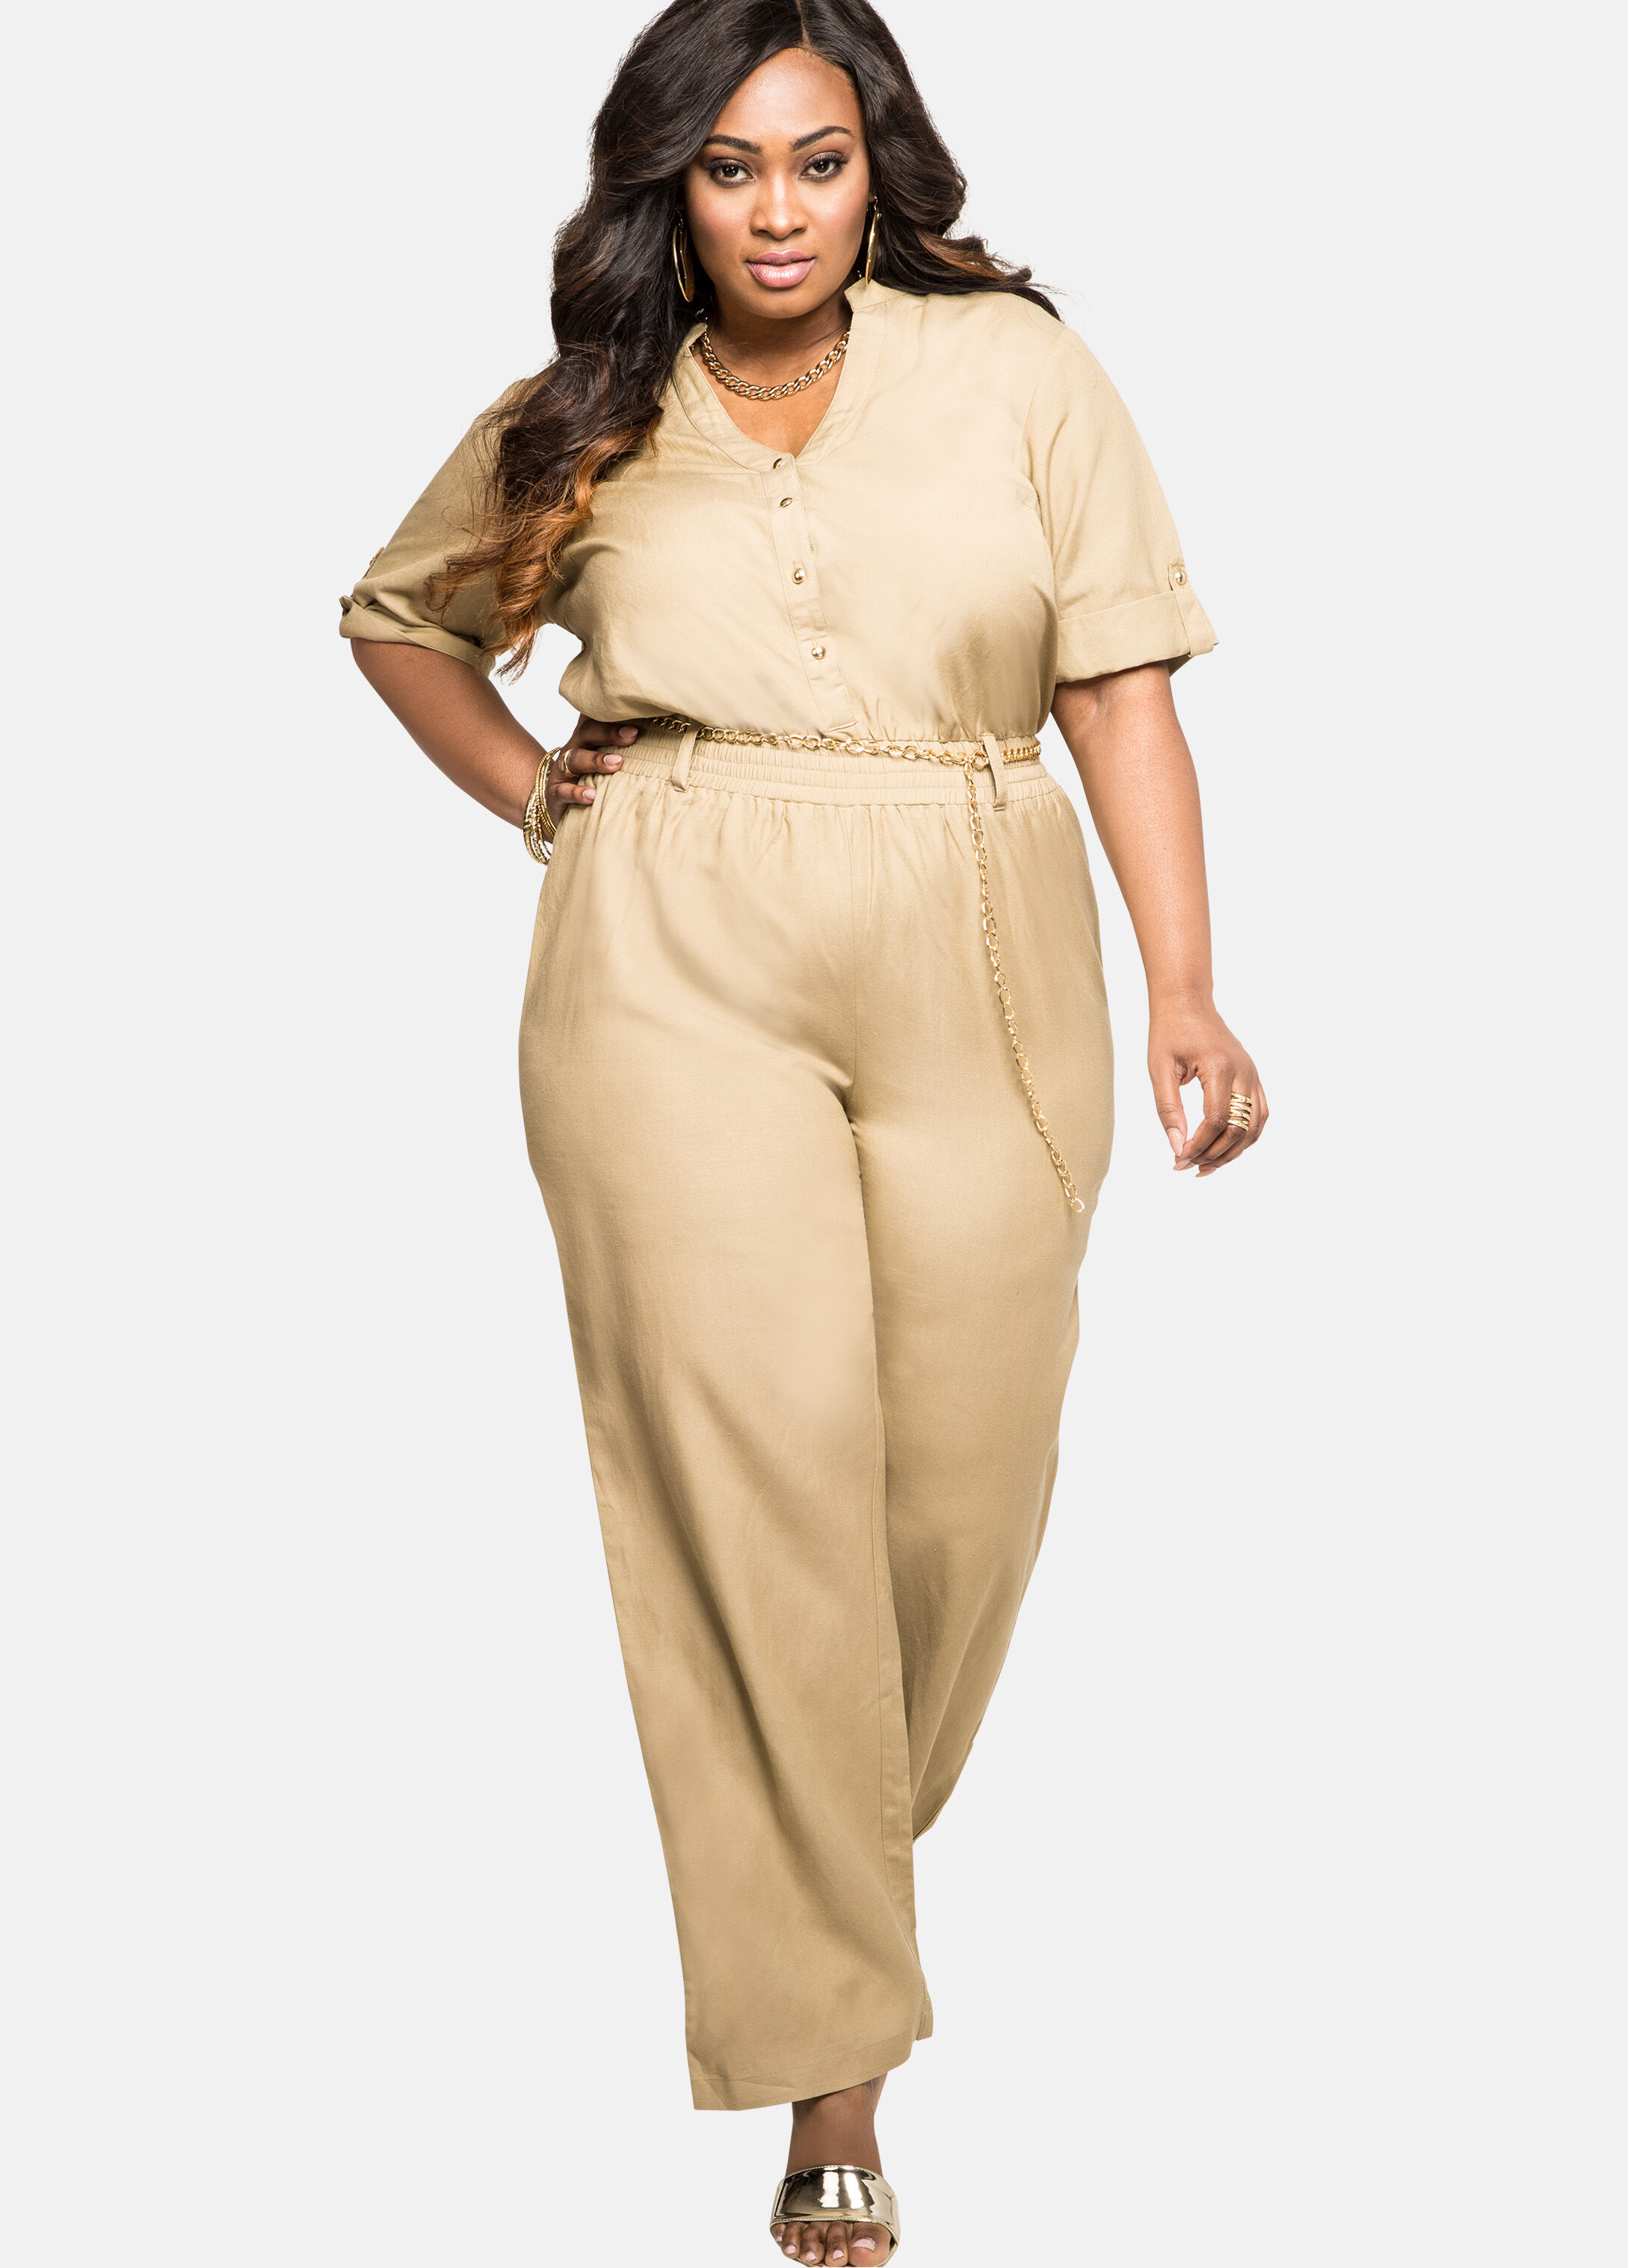 Clearance: Plus-Size Dresses On Sale | Ashley Stewart